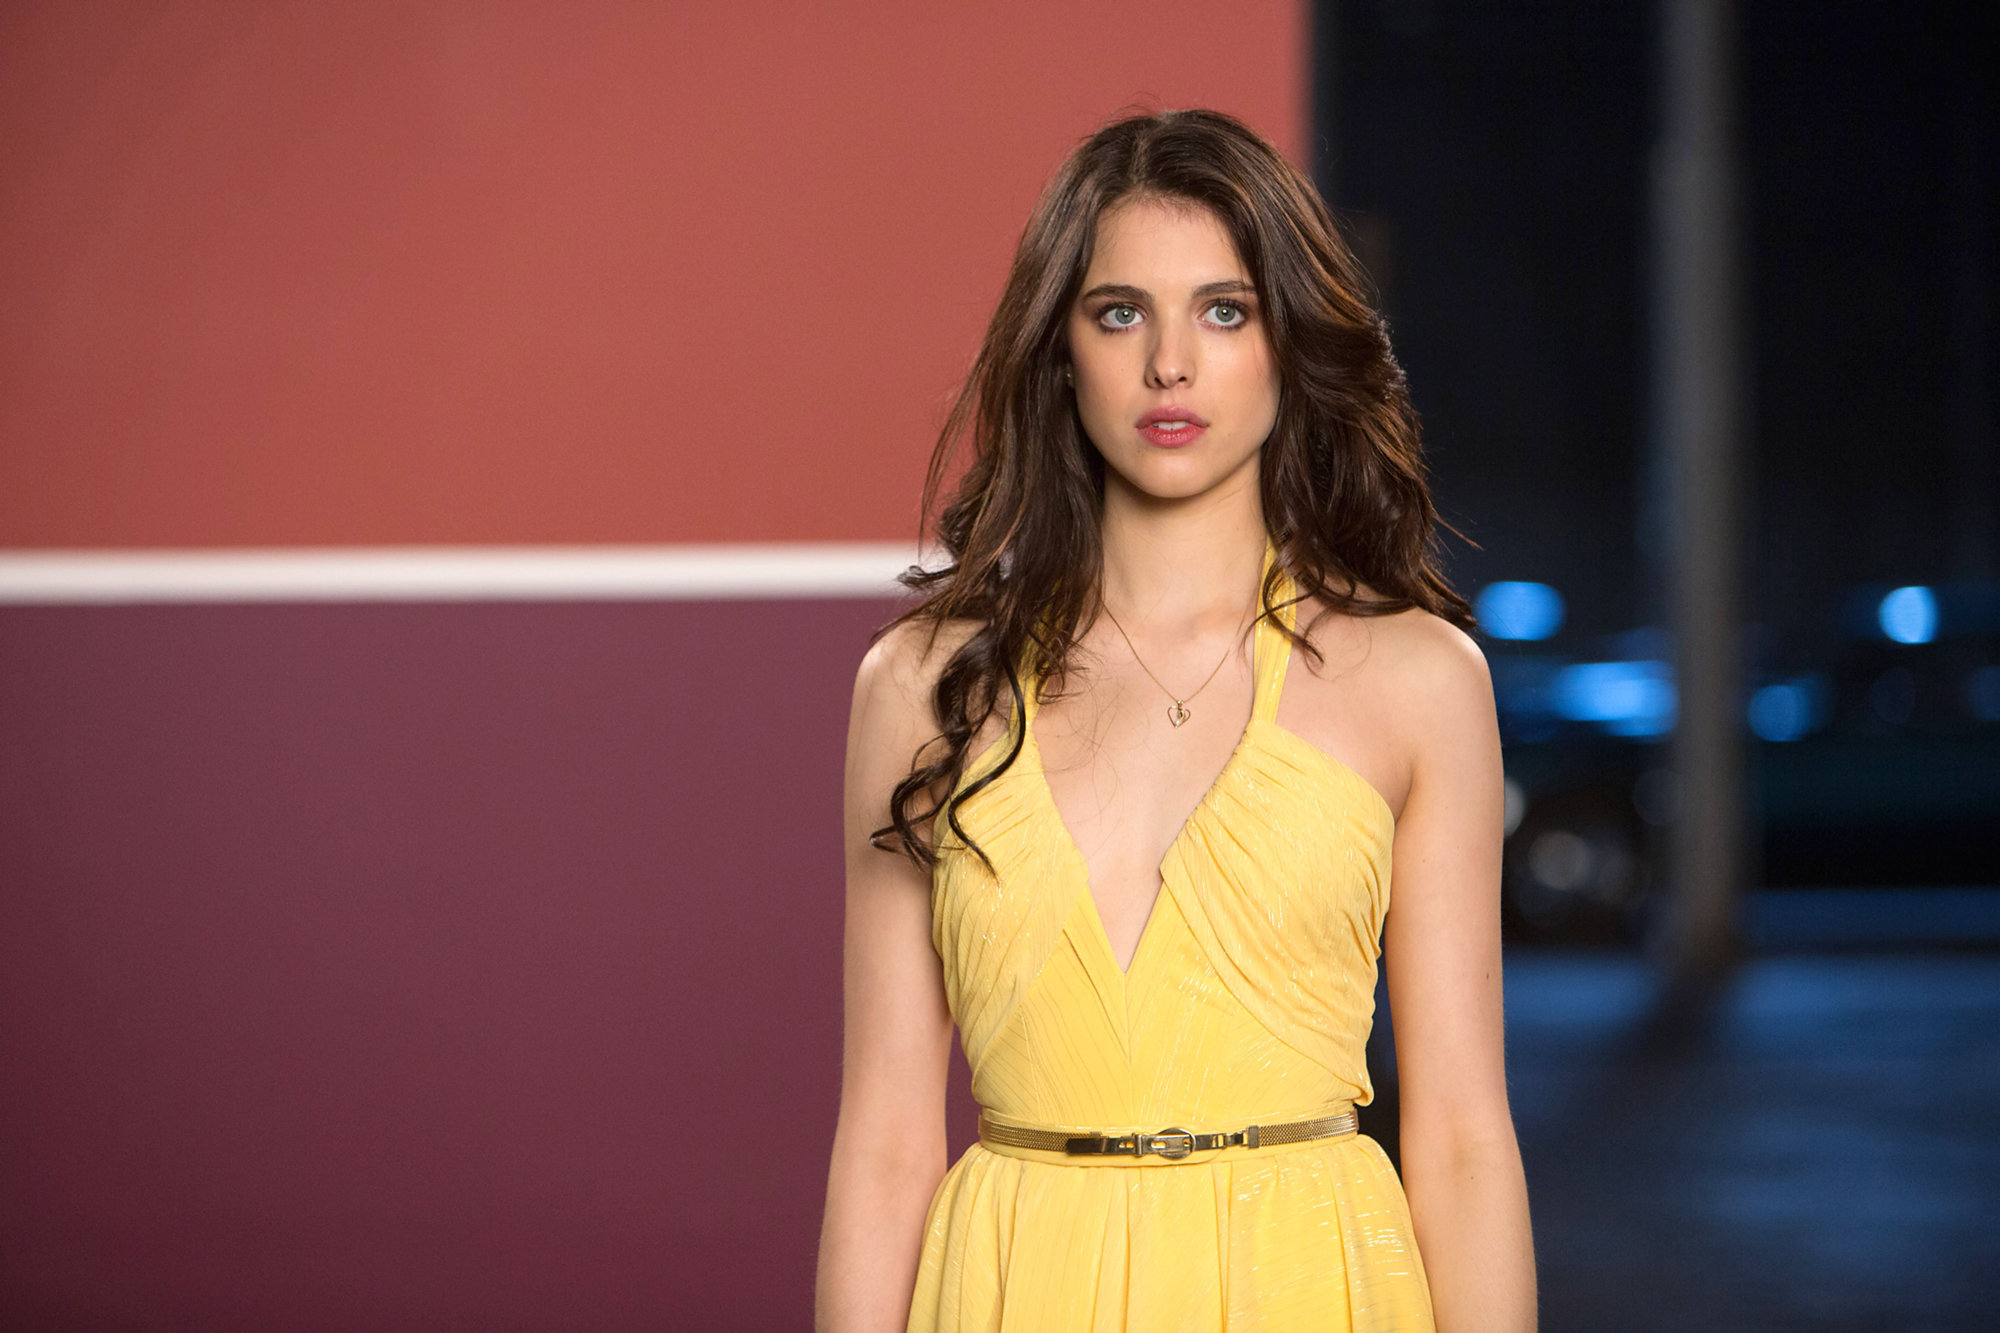 The Nice Guys's Margaret Qualley Shares What It's Like to Work with Ryan Gosling and Russell